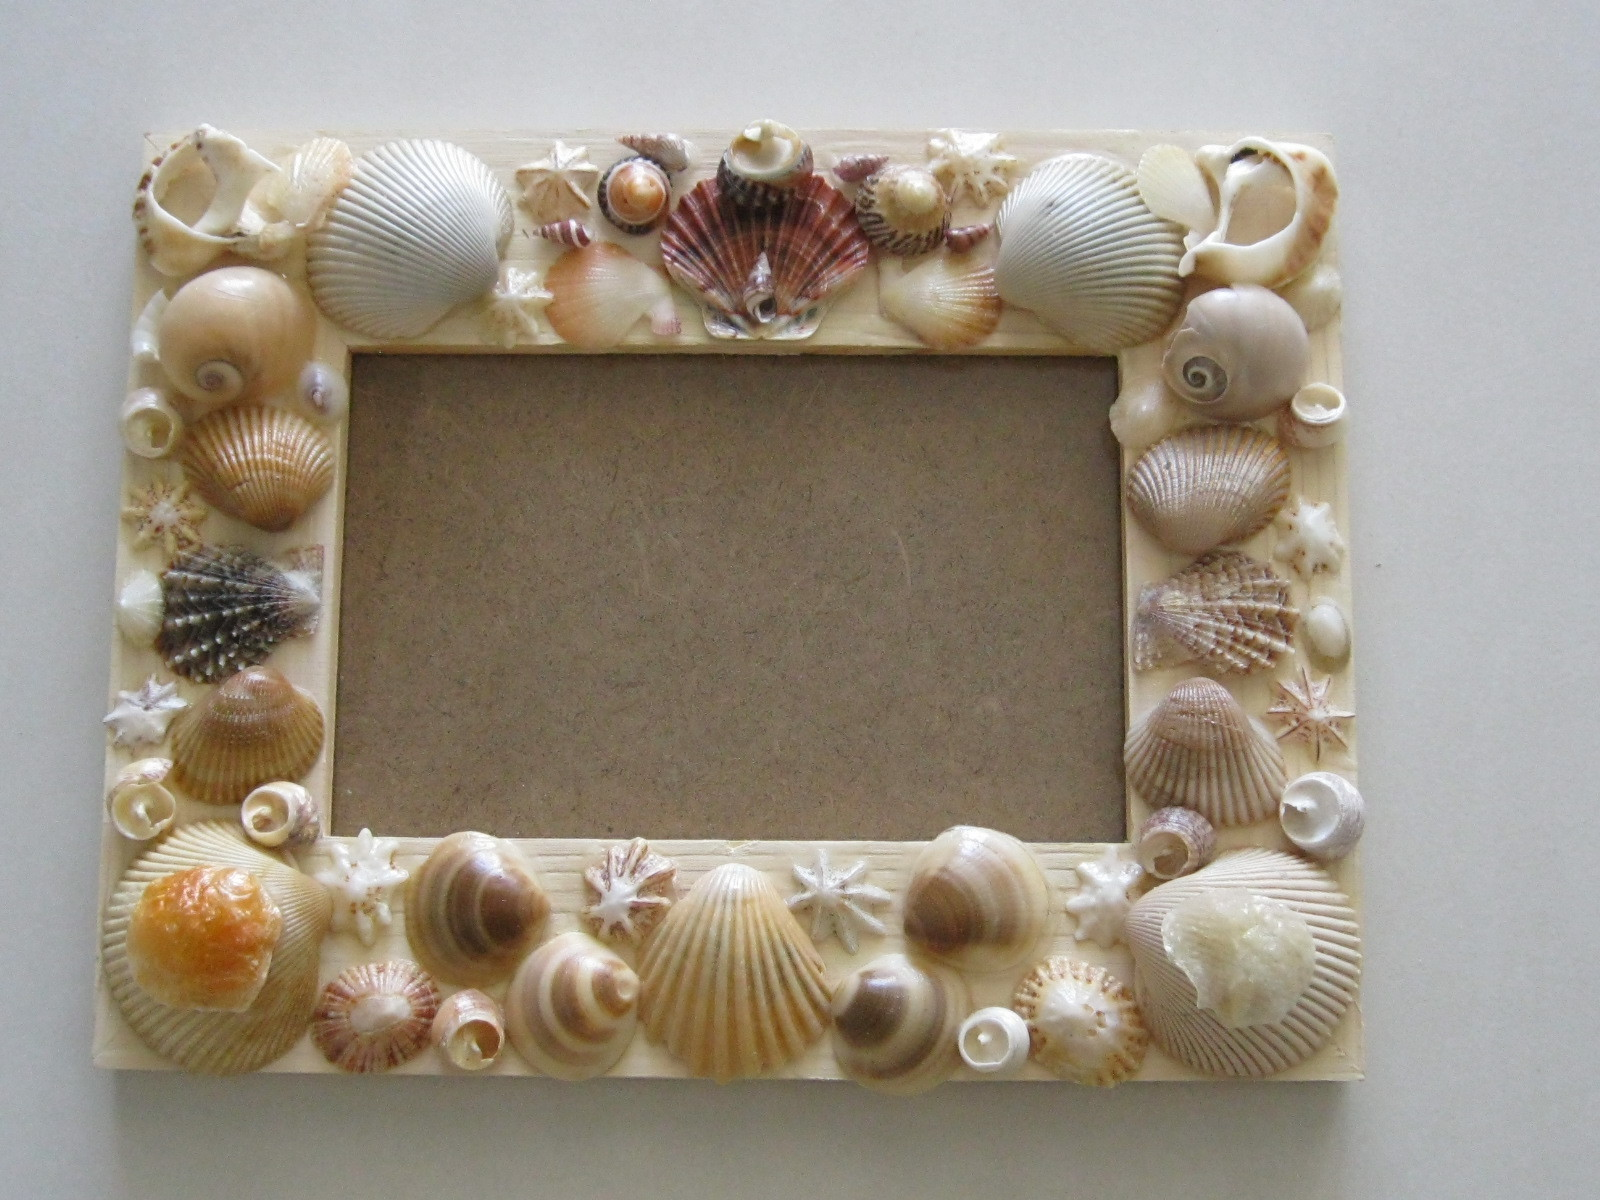 Fabulous Photo Frames